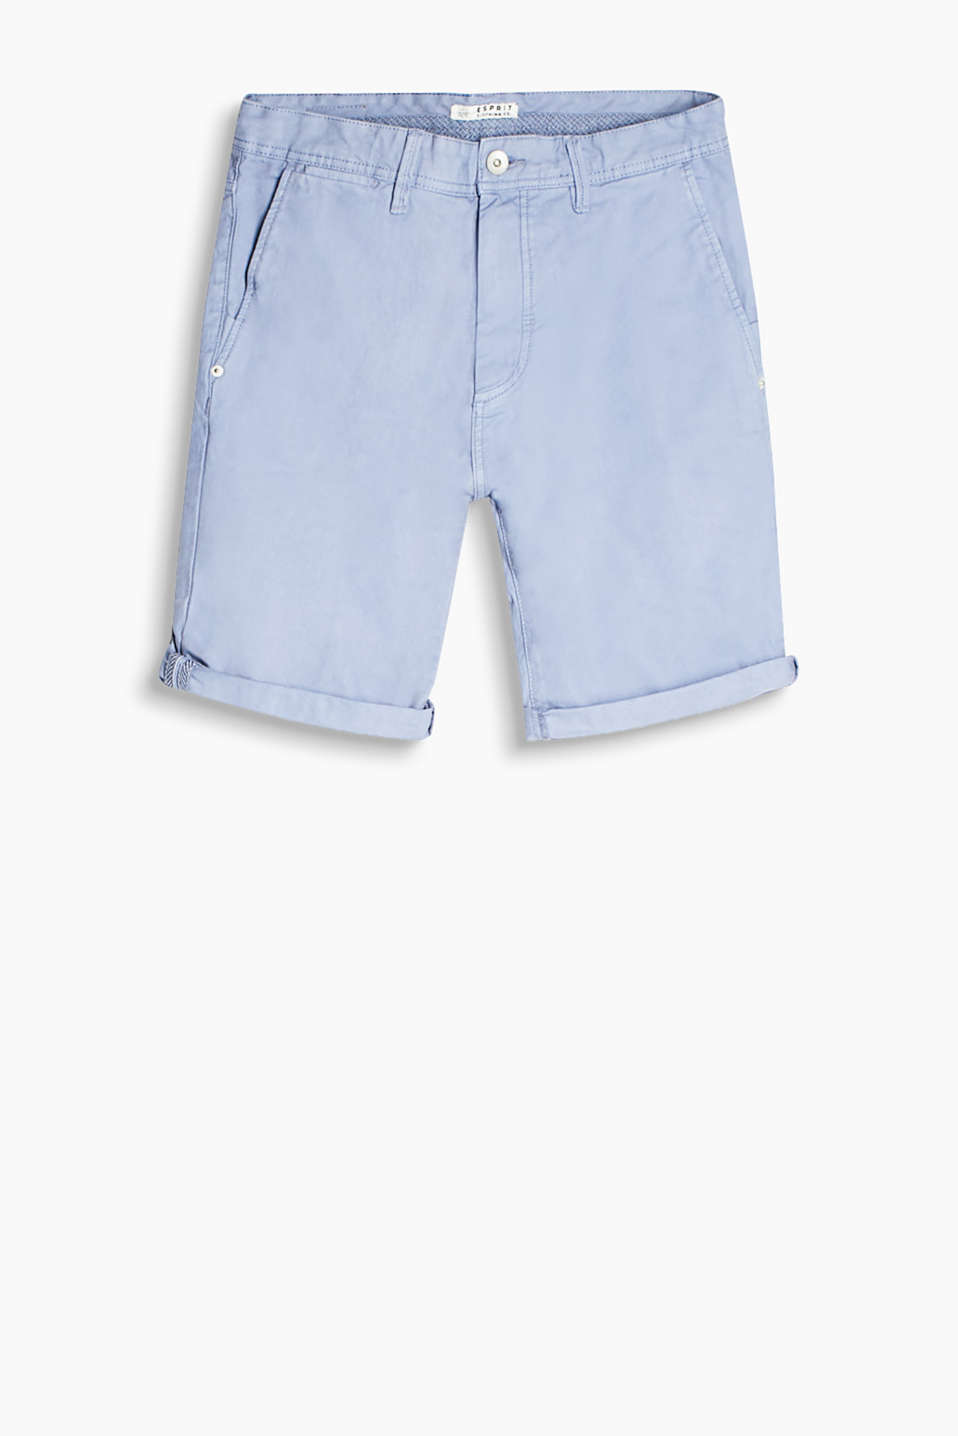 Denim Bermudas in an unembellished wash and classic 5 pocket design